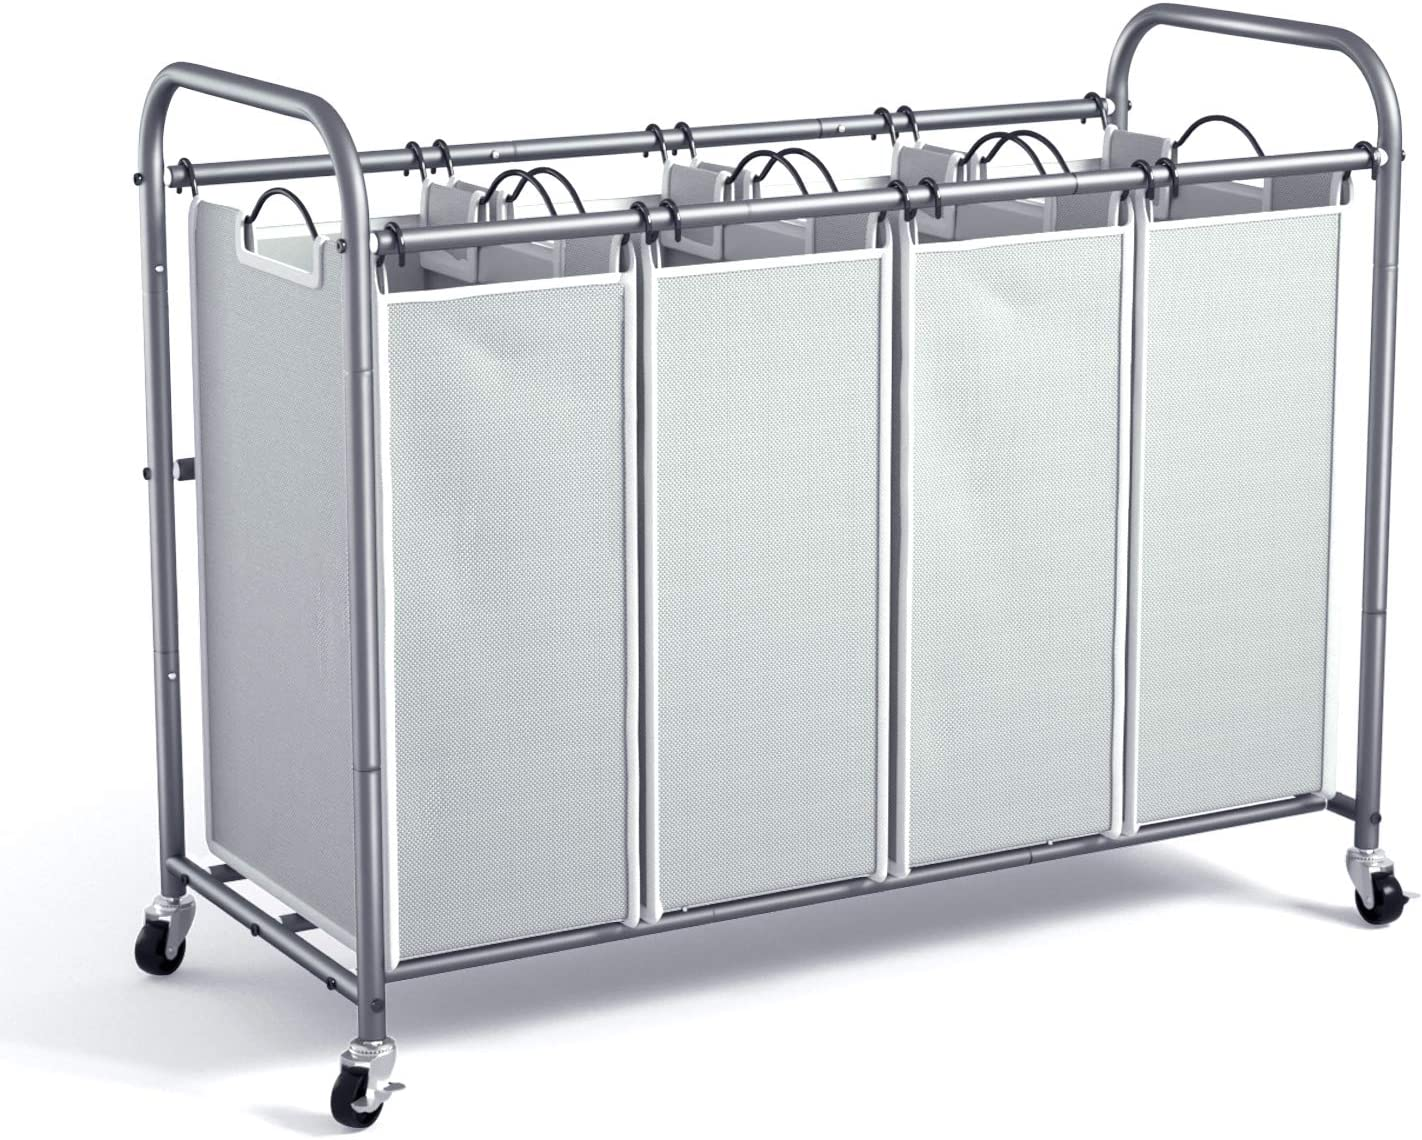 ROMOON 4 Super beauty product restock quality Sales for sale top Bag Laundry Sorter with Hamper Hea Cart